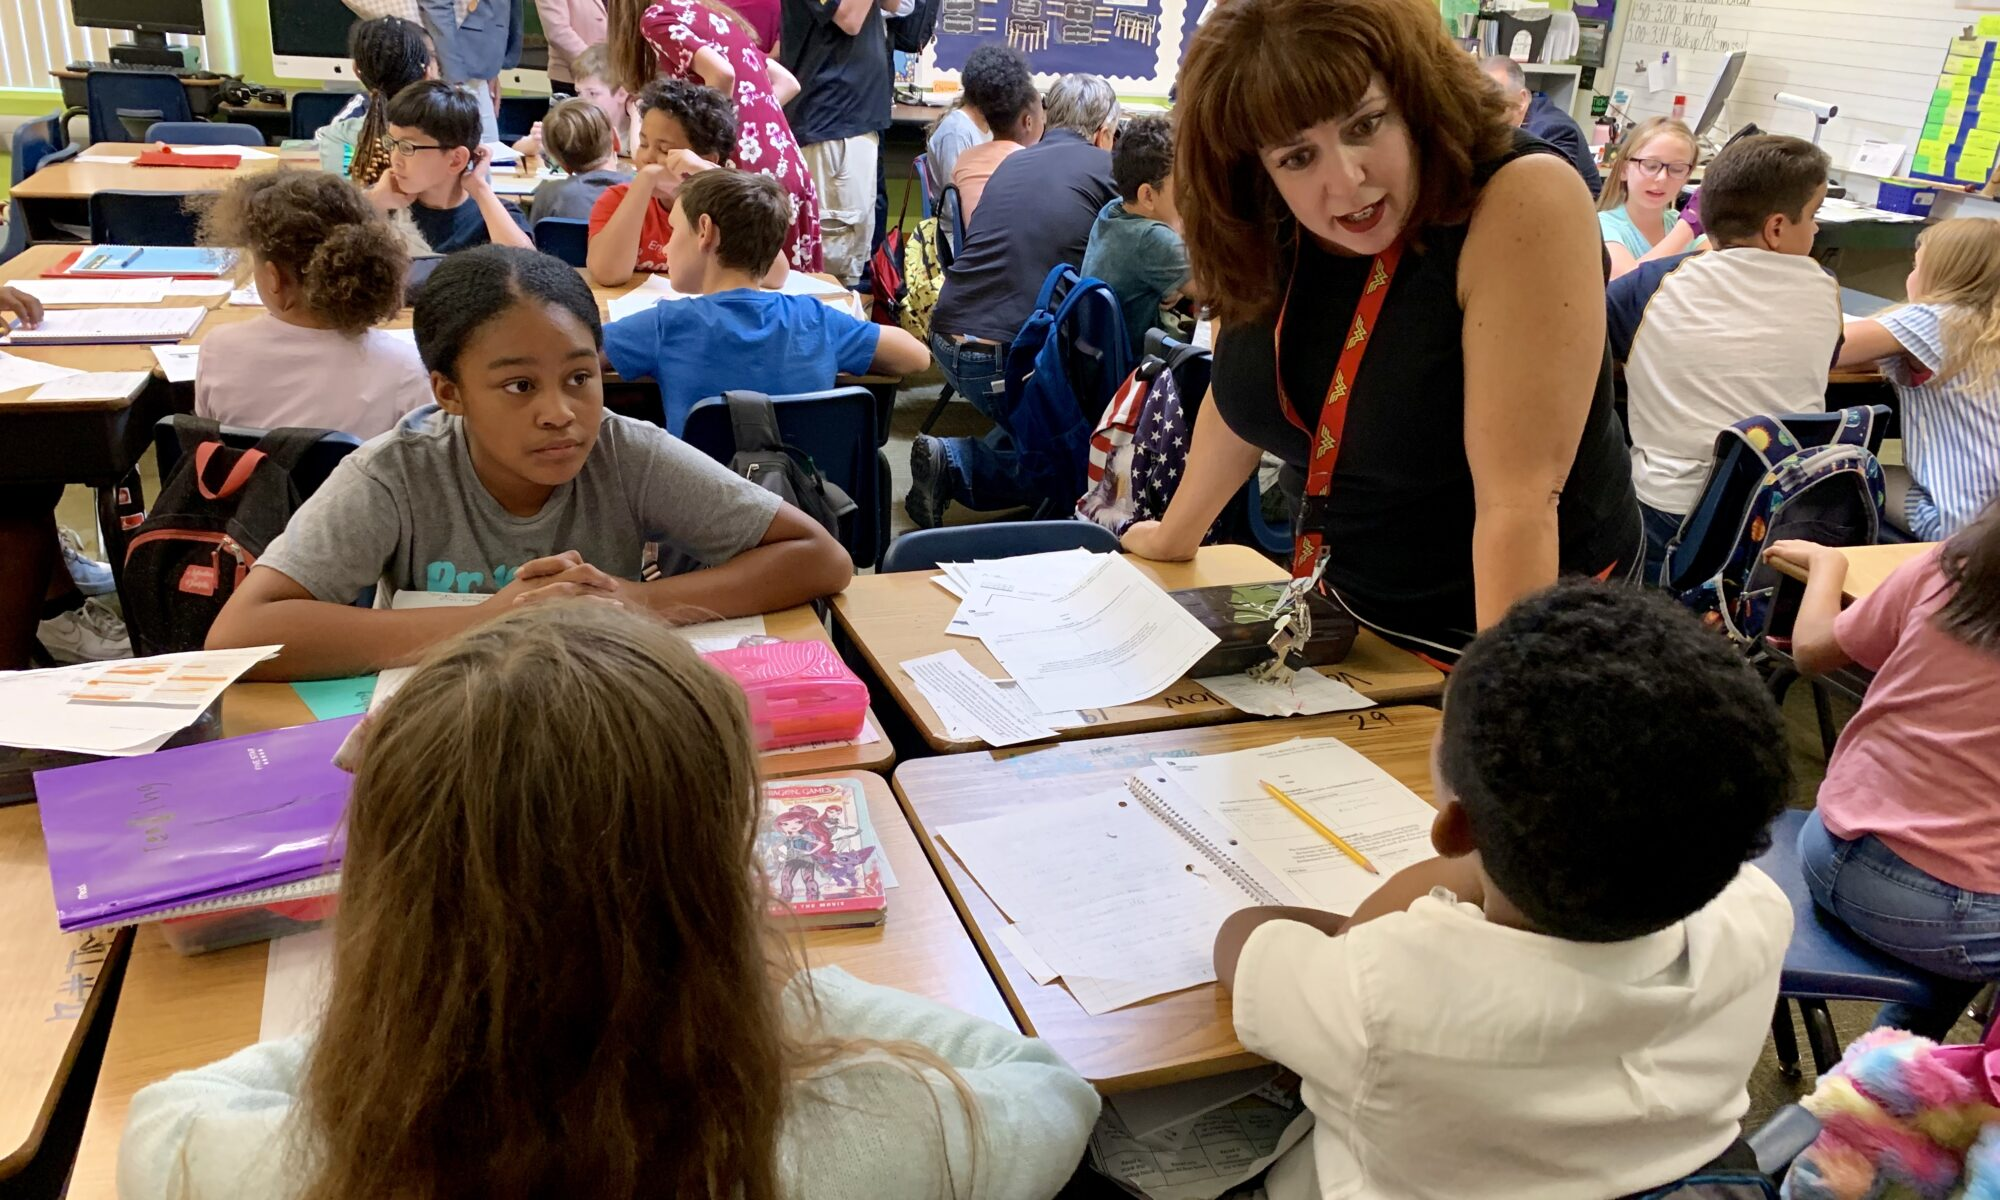 As school ratings show some statewide gains, education officials call for more sharing of best practices